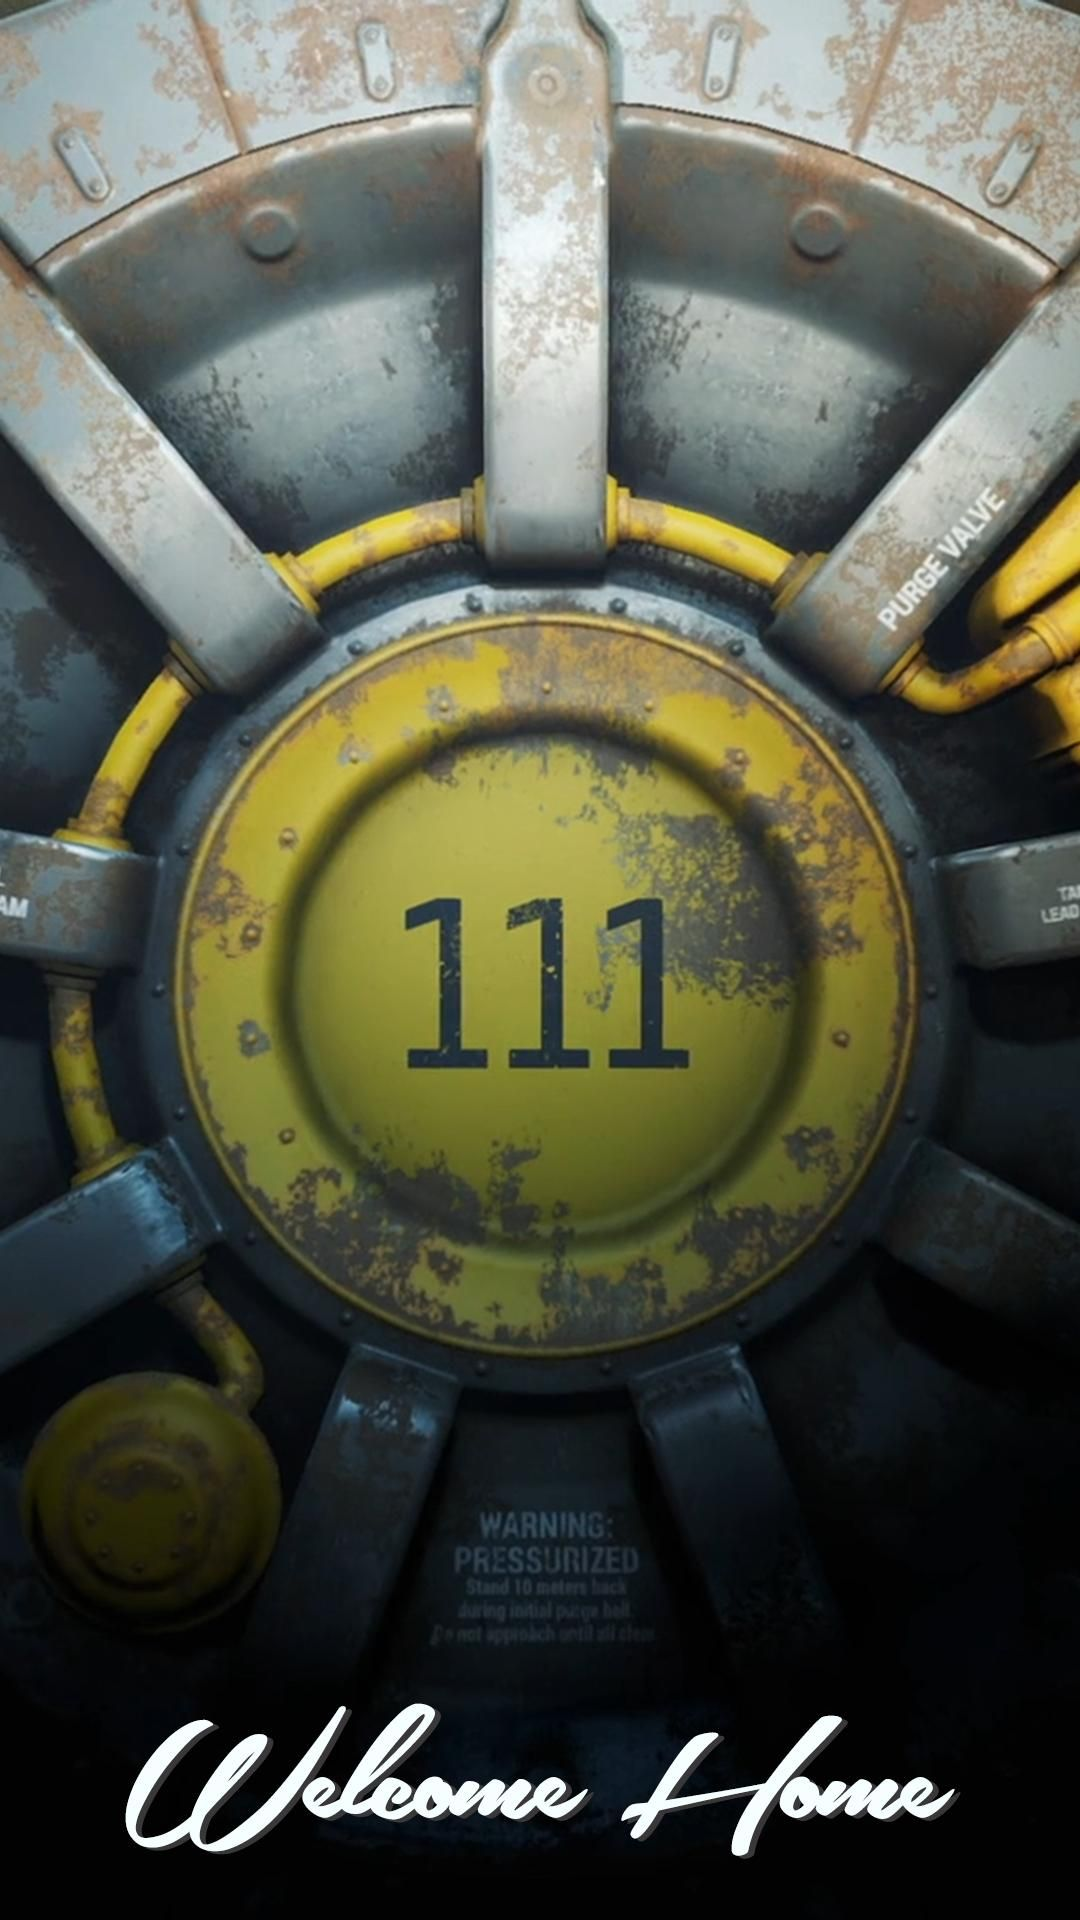 New Fallout 4 Mobile Wallpapers Fallout Wallpaper Fallout